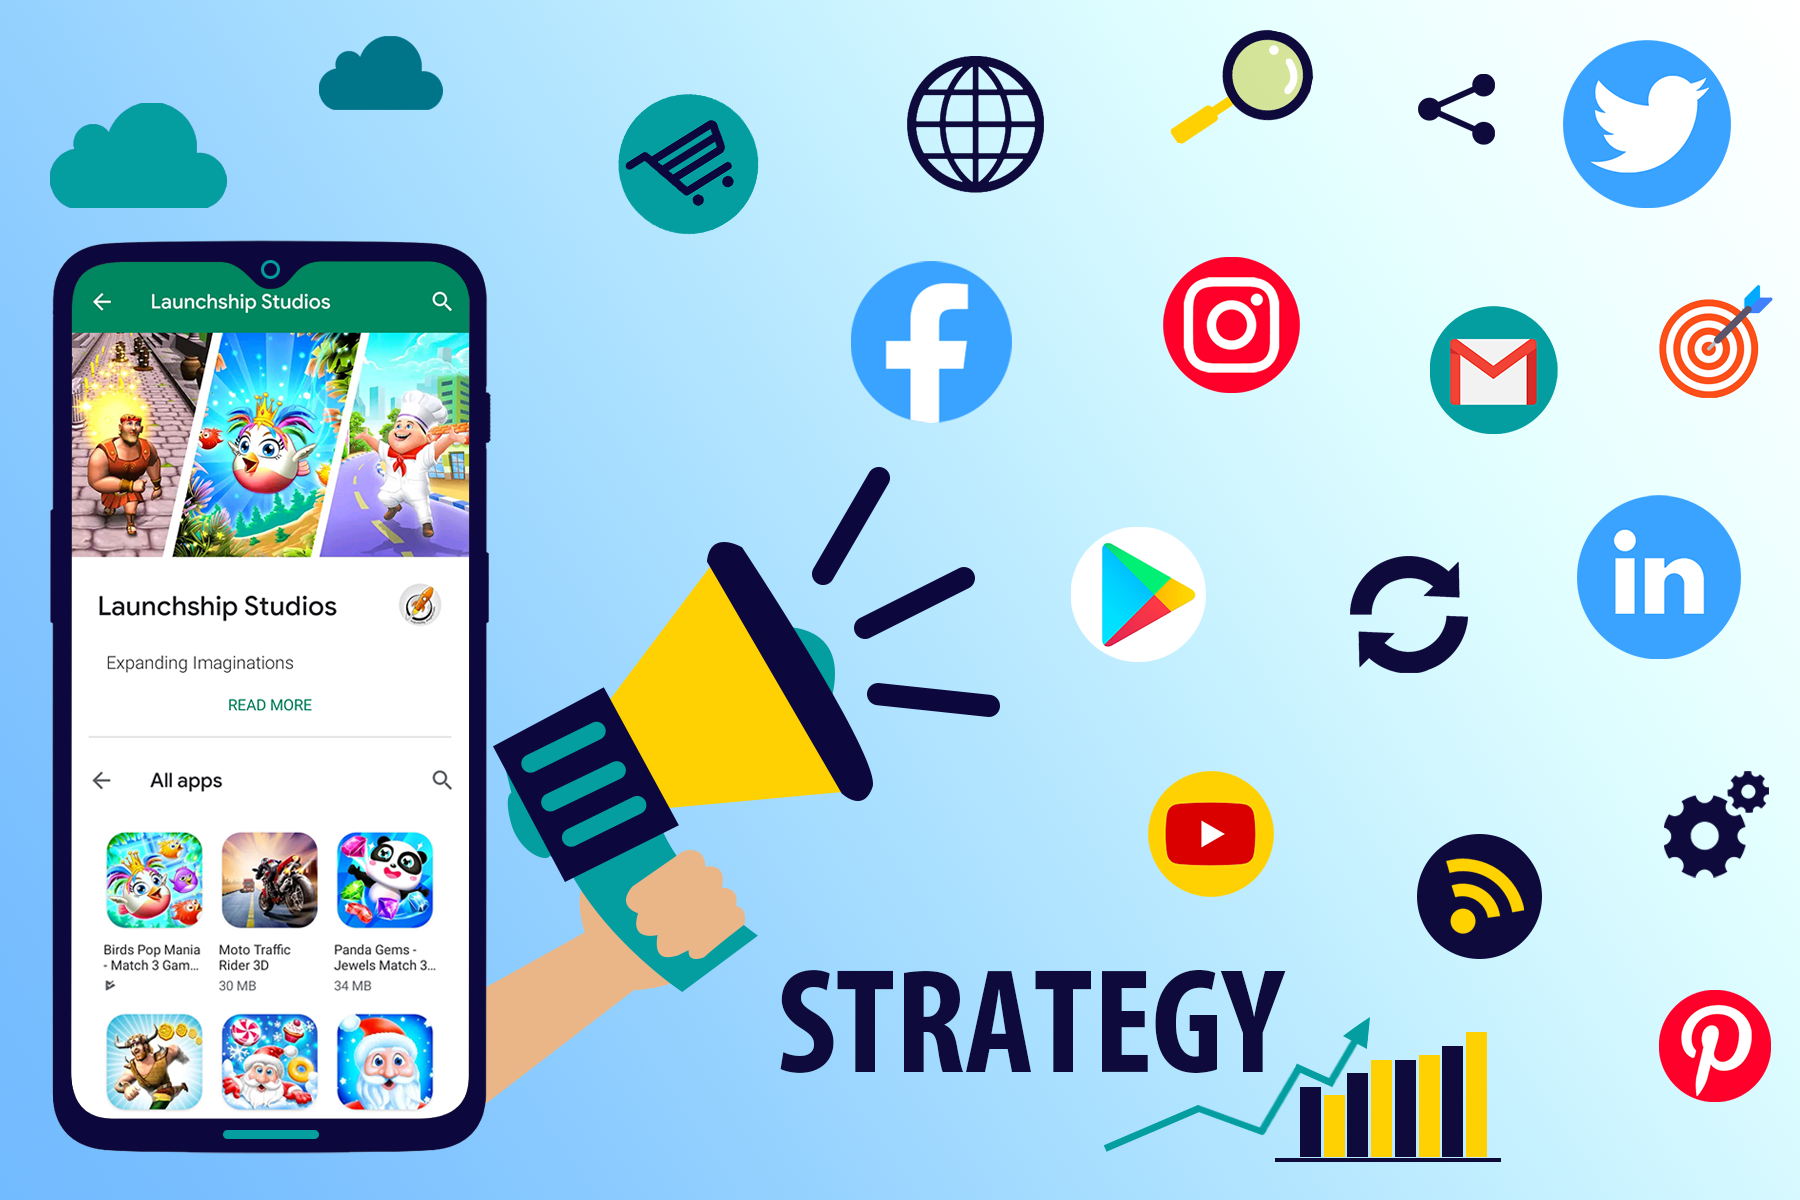 Best Strategies That Can Be Used for Soft Launching A Mobile Game in 2020